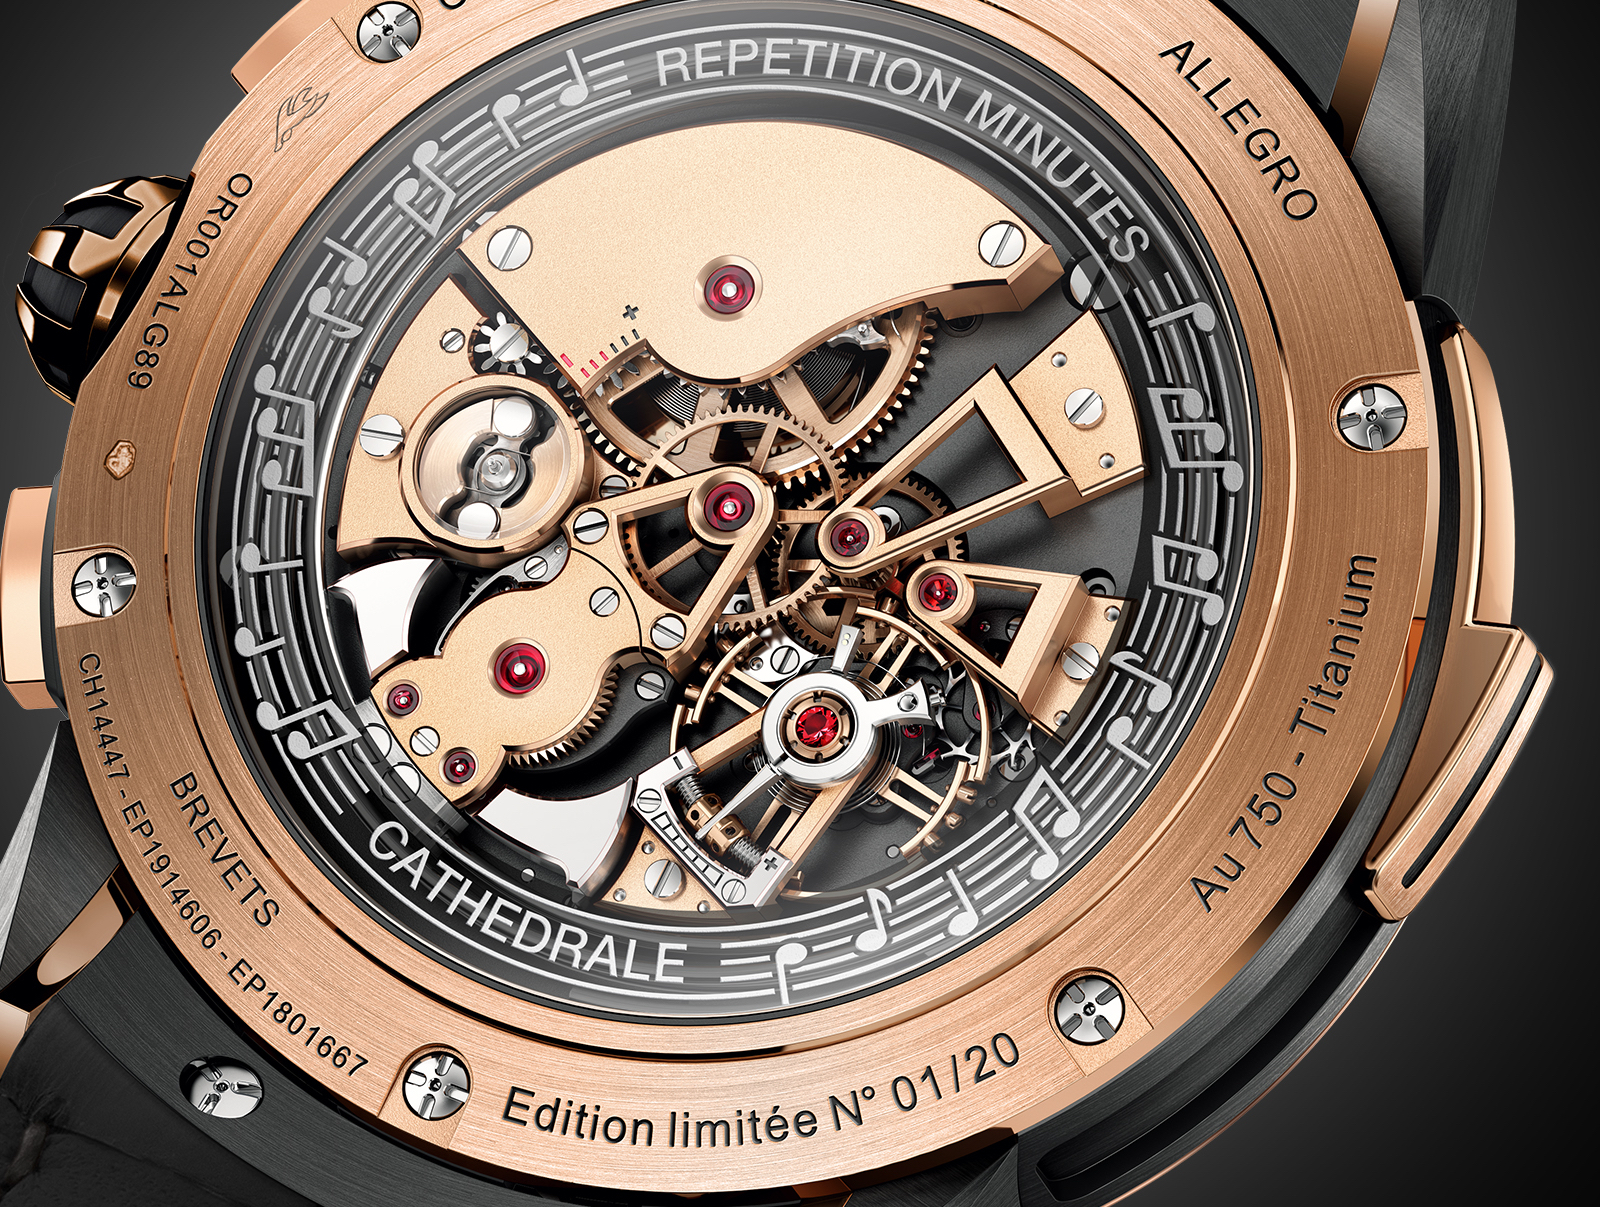 Allegro Christophe Claret back red gold